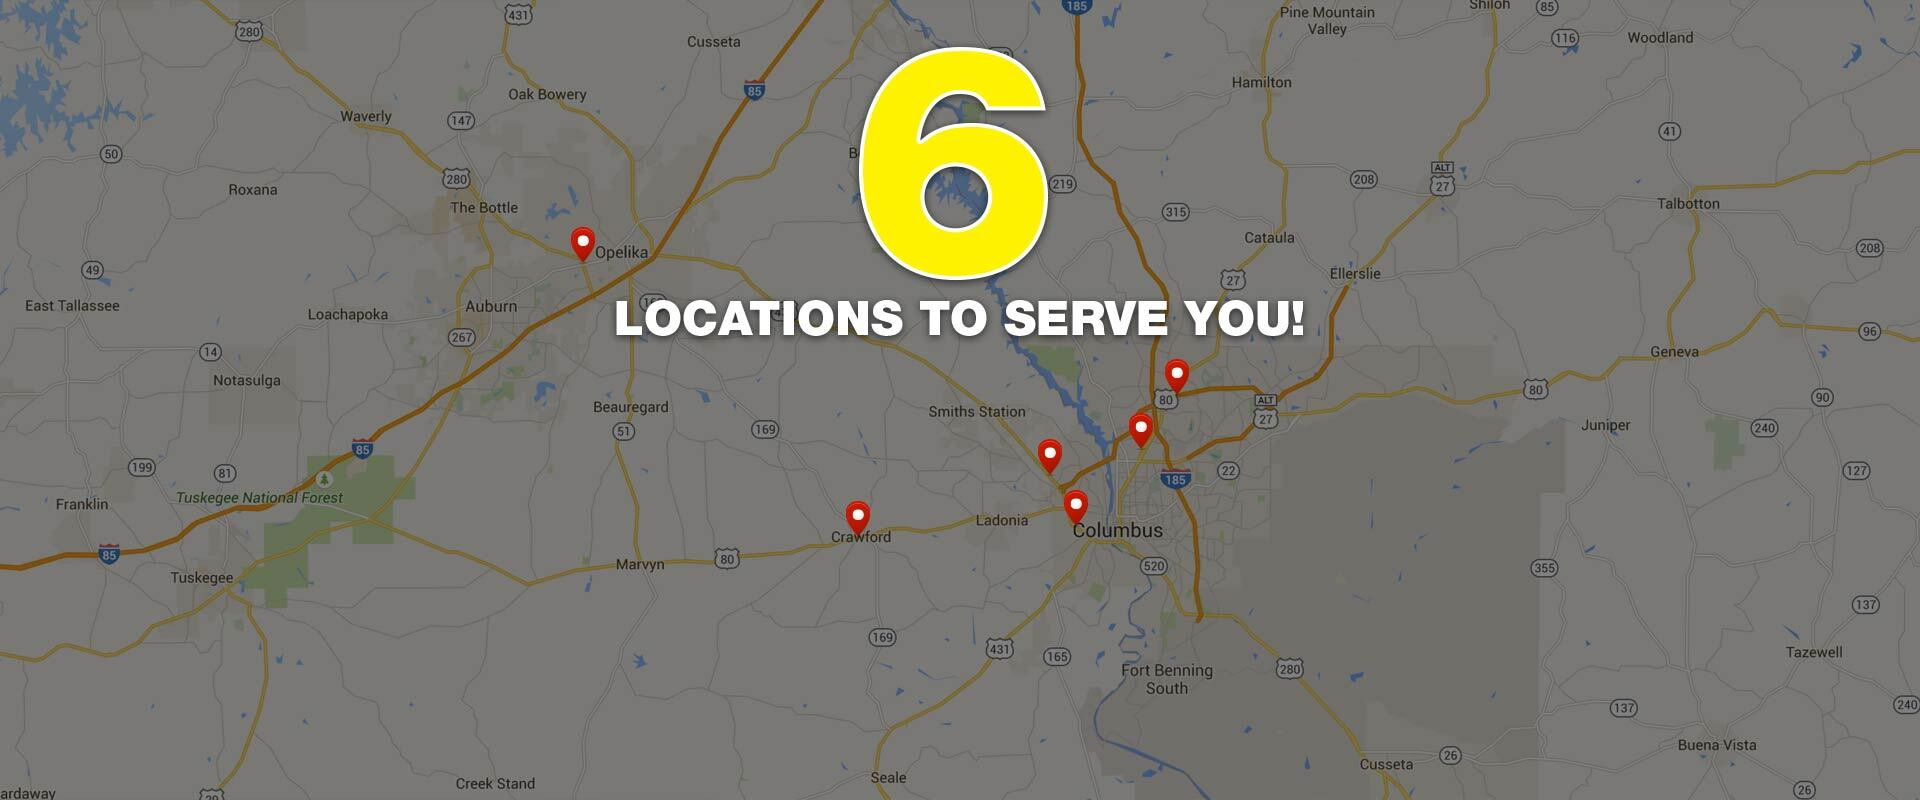 6 Locations to serve you